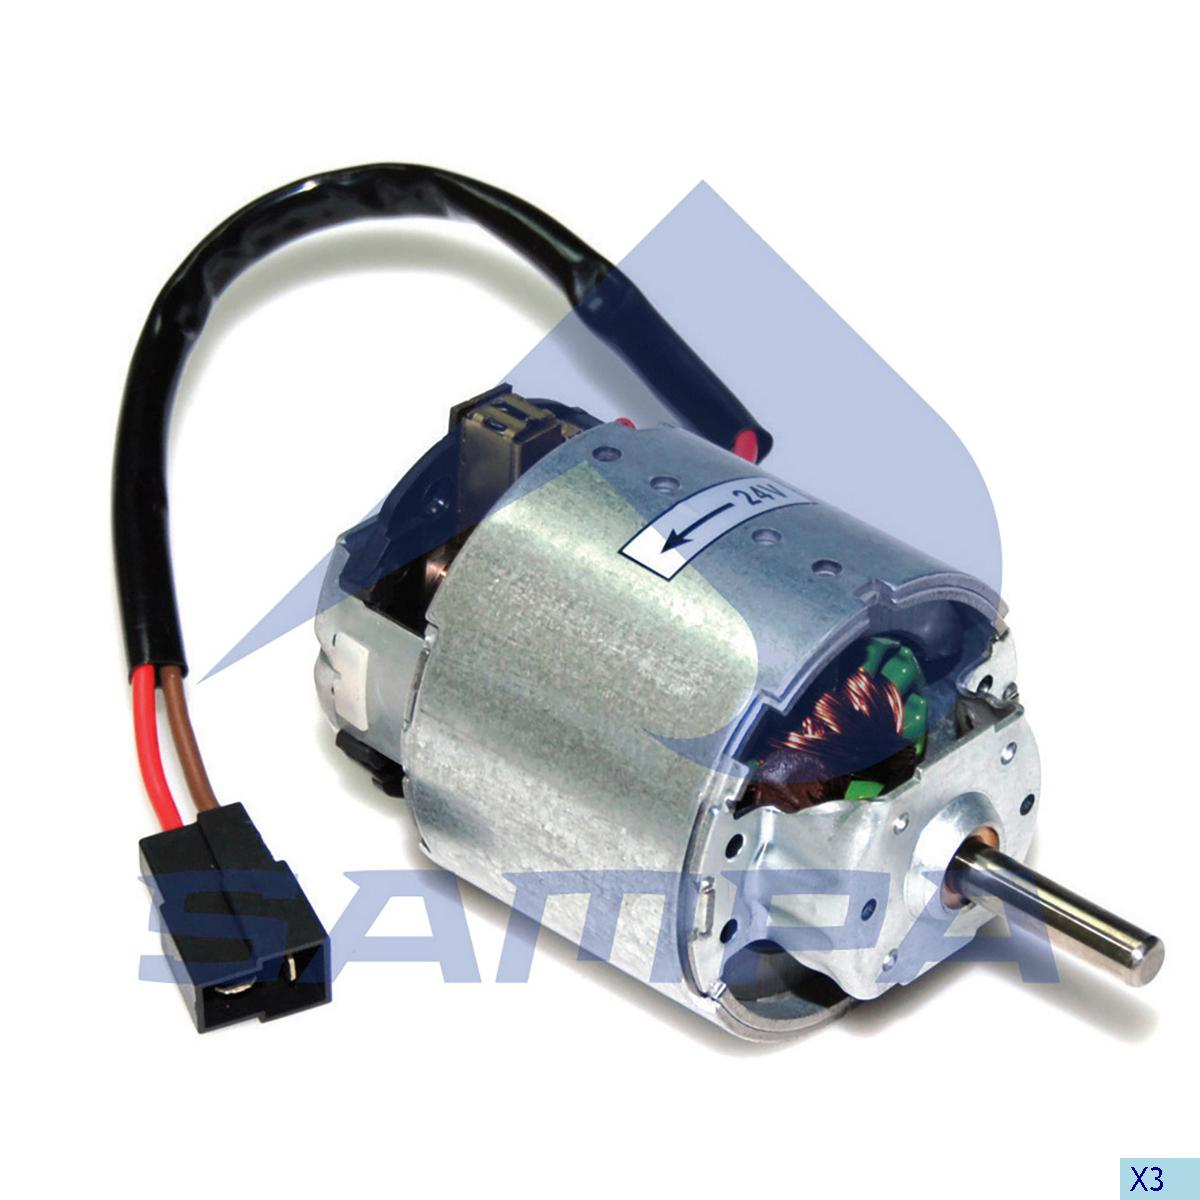 Fan Motor, Cab Heating & Ventilation, Scania, Cab